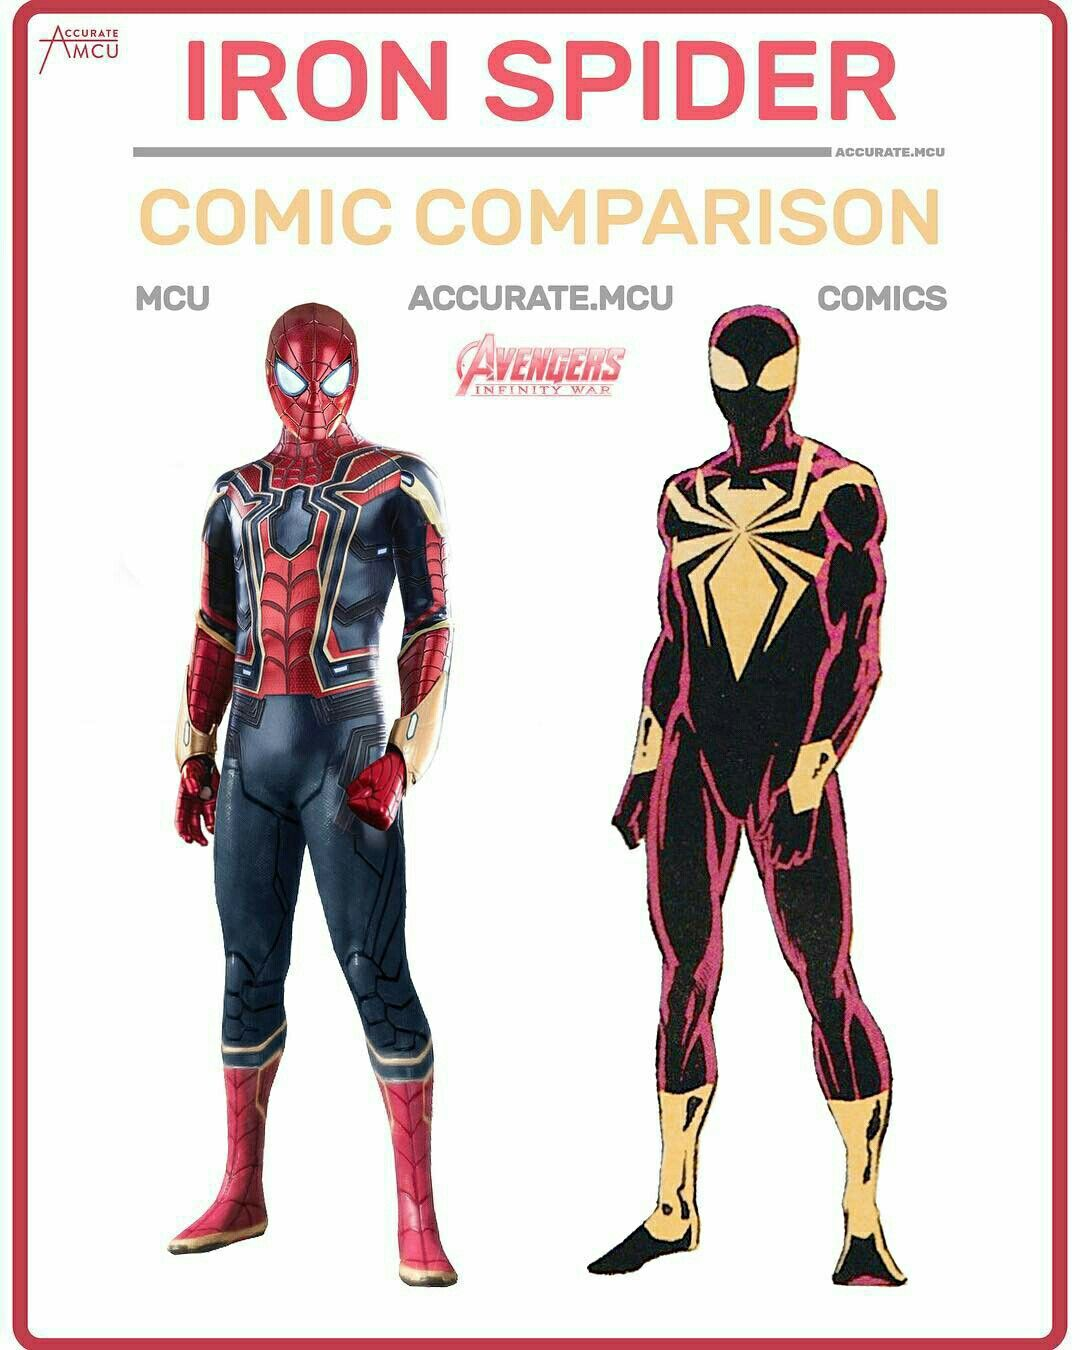 Mcu Libros Pin De Ad Quinti En Cómic Comparation Cómic Marvel Y